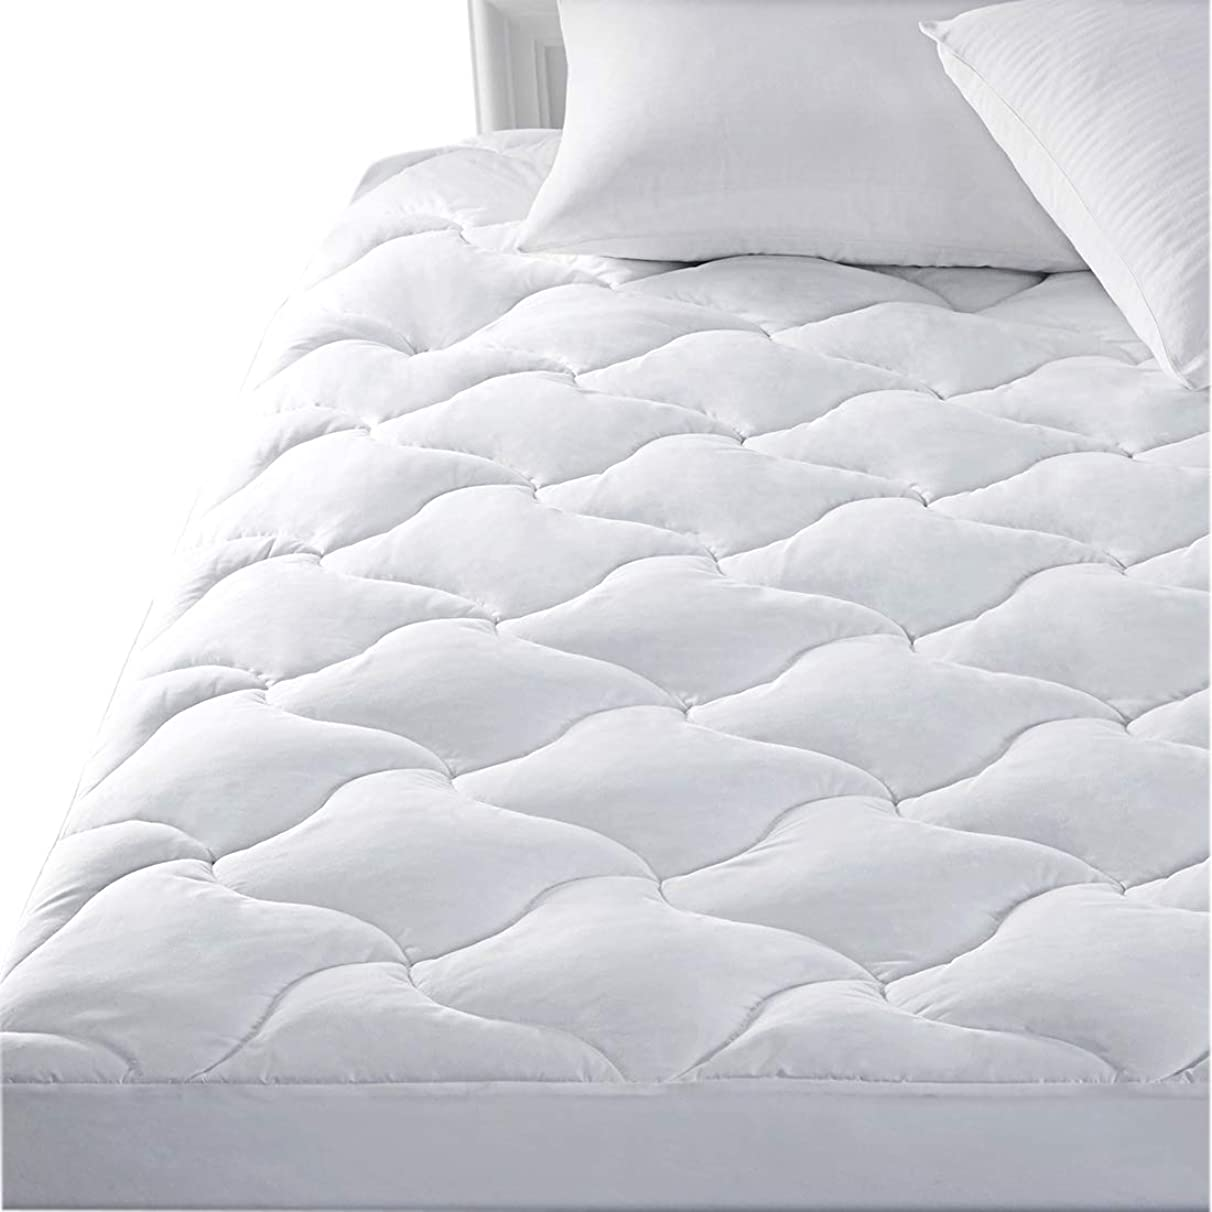 SWTMERRY Mattress Pad Cover Twin Size Hypoallergenic Ultra Soft Quilted Fitted Mattress Protector Fitted Sheet Mattress Cover Antibacterial Breathable -White